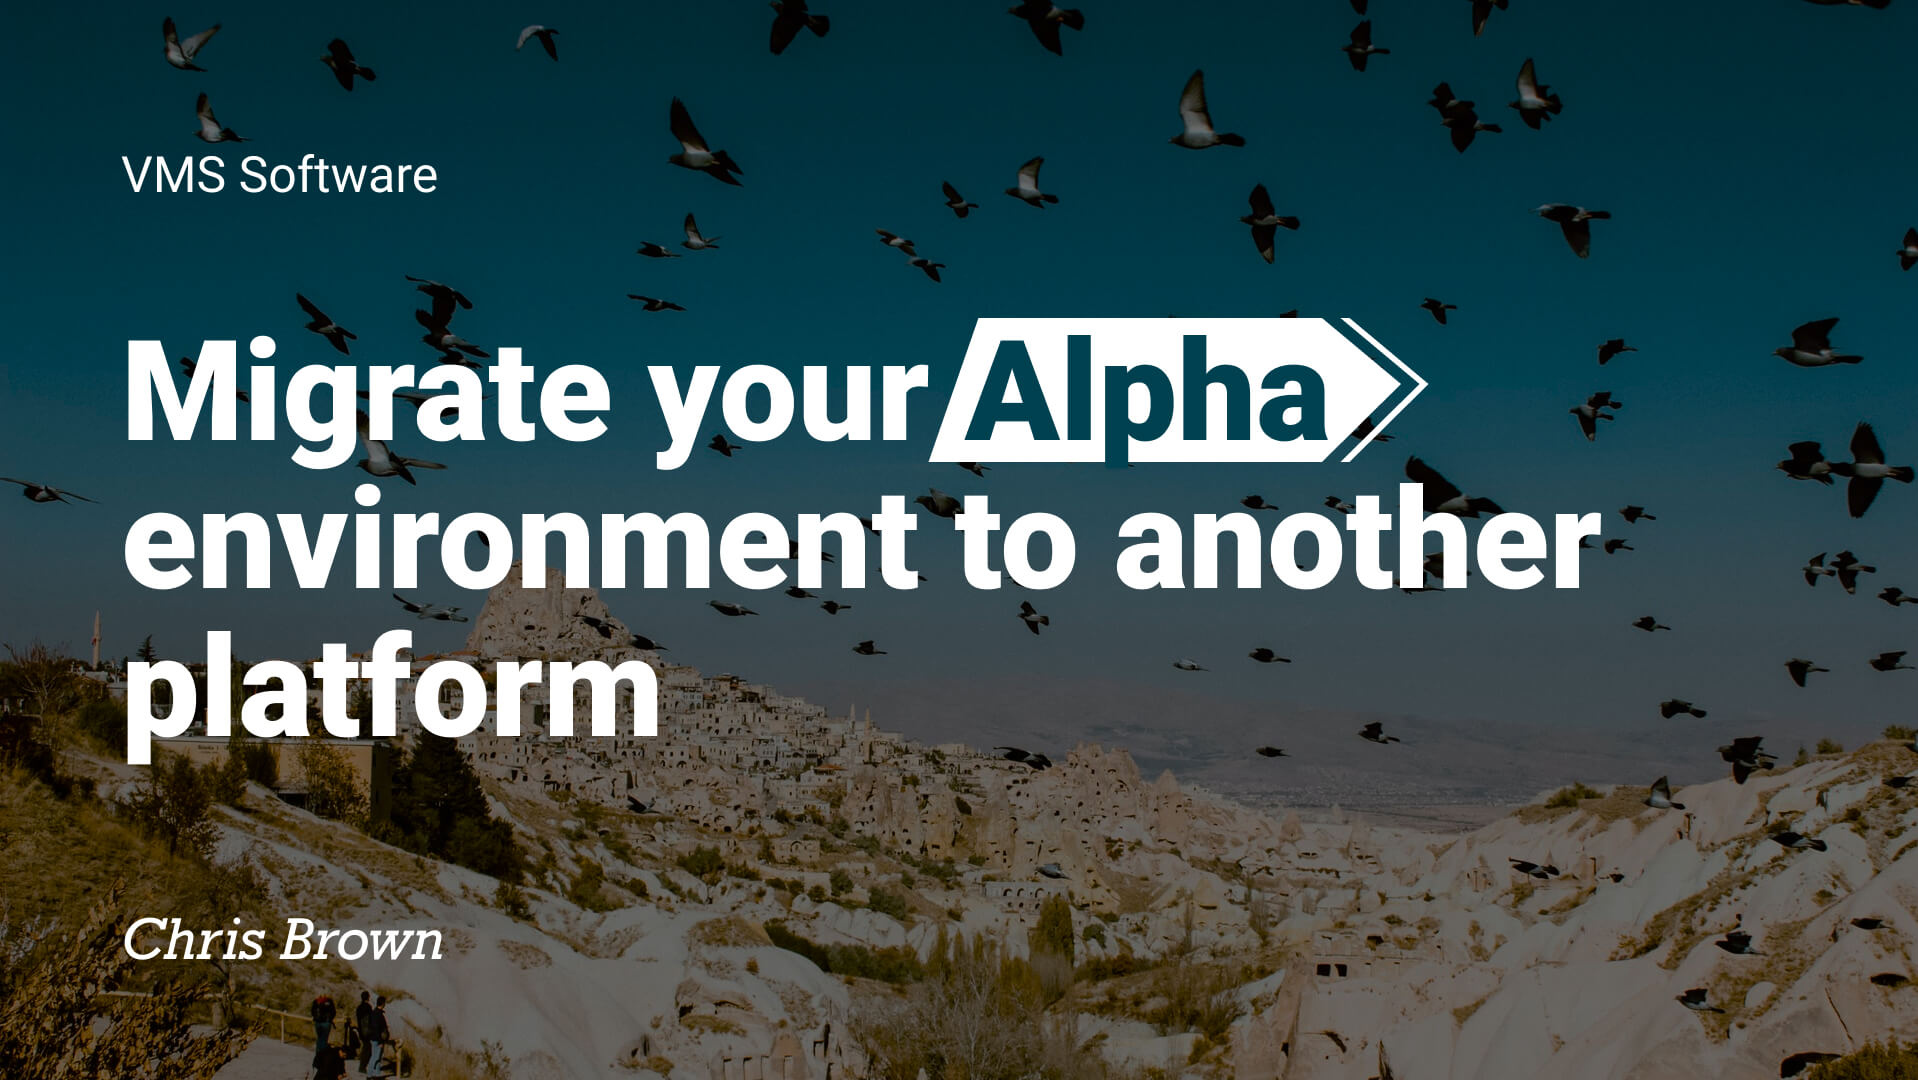 Migrate your Alpha environment to another platform